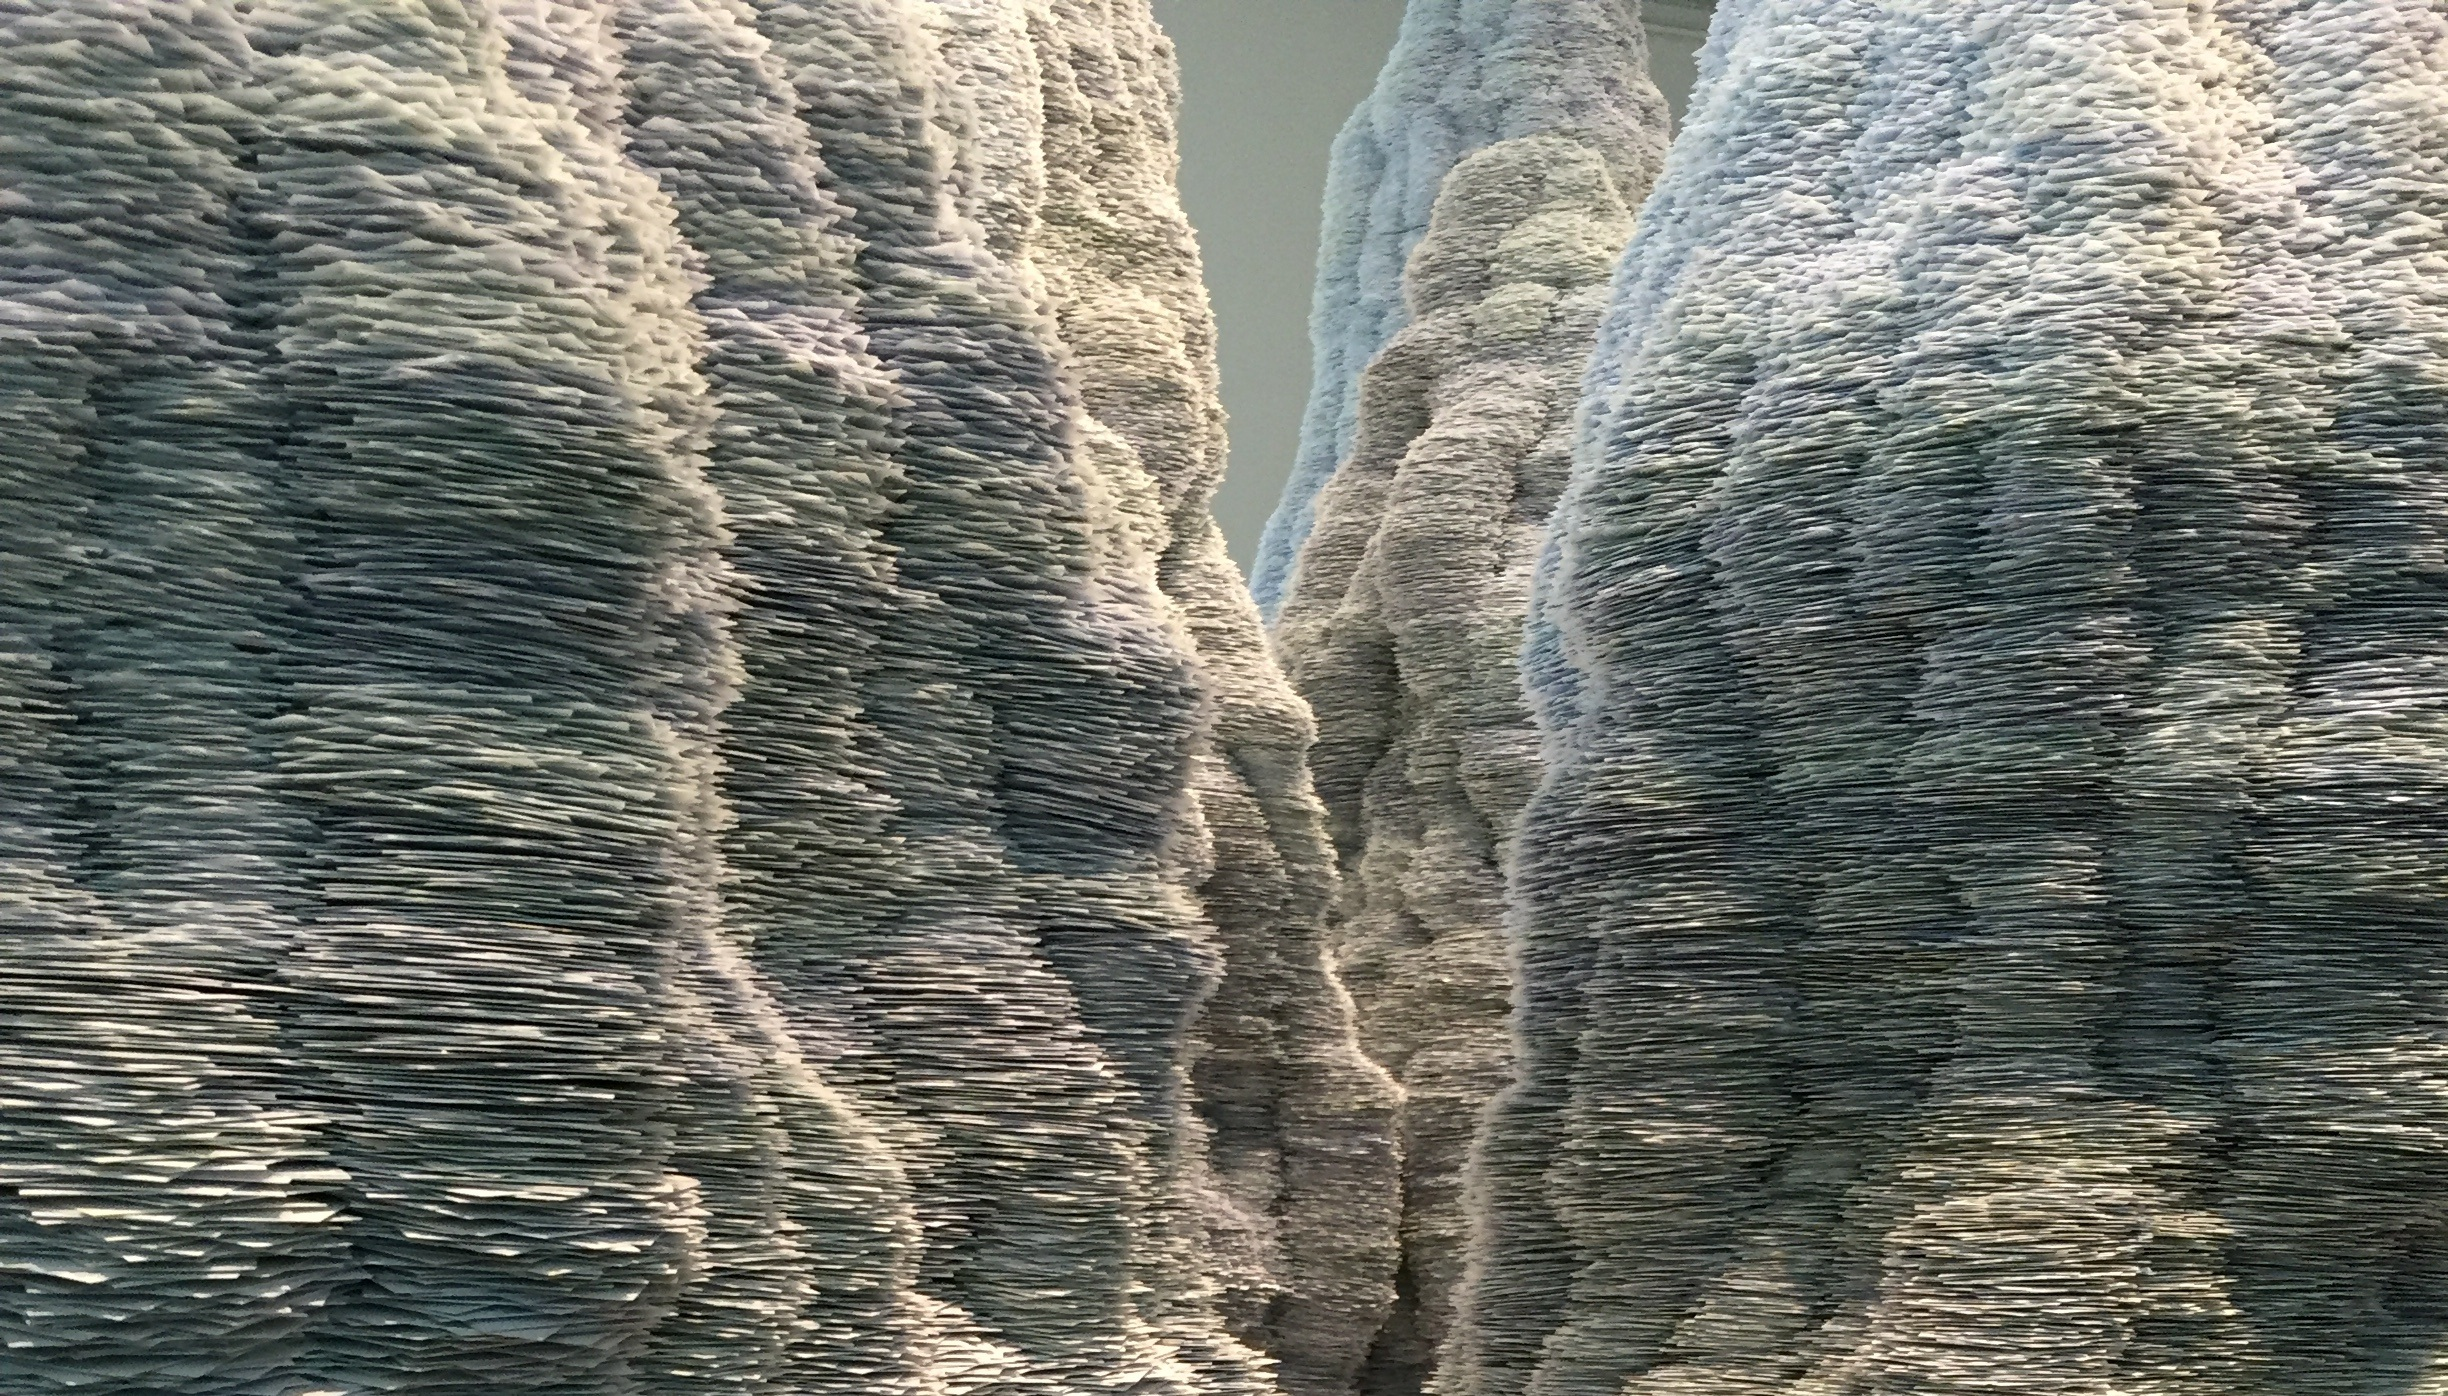 Landscape created from index cards by Tara Donovan (2014)